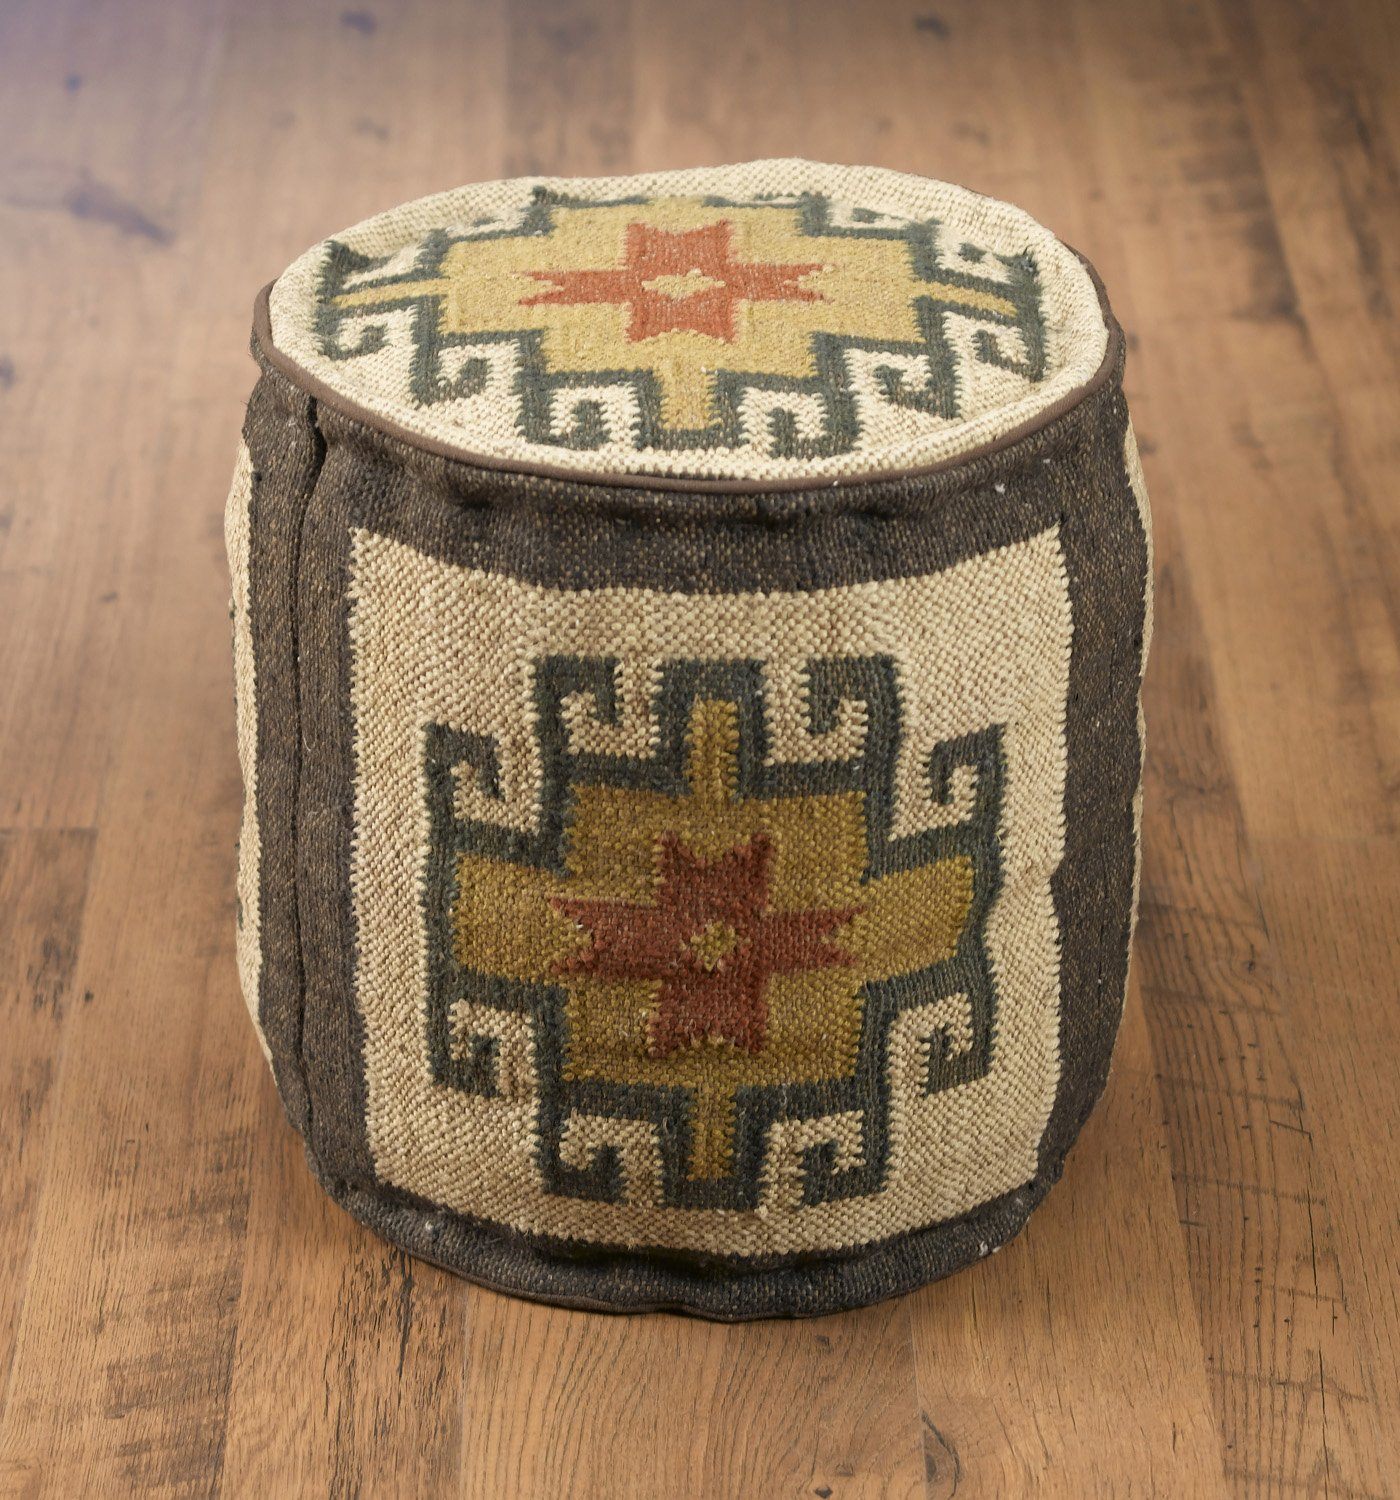 Wool Ottomans Aa Importing 48842 Round Kilim Pouf 17 X 17 X 17 Inches Multicolored Model # 48842